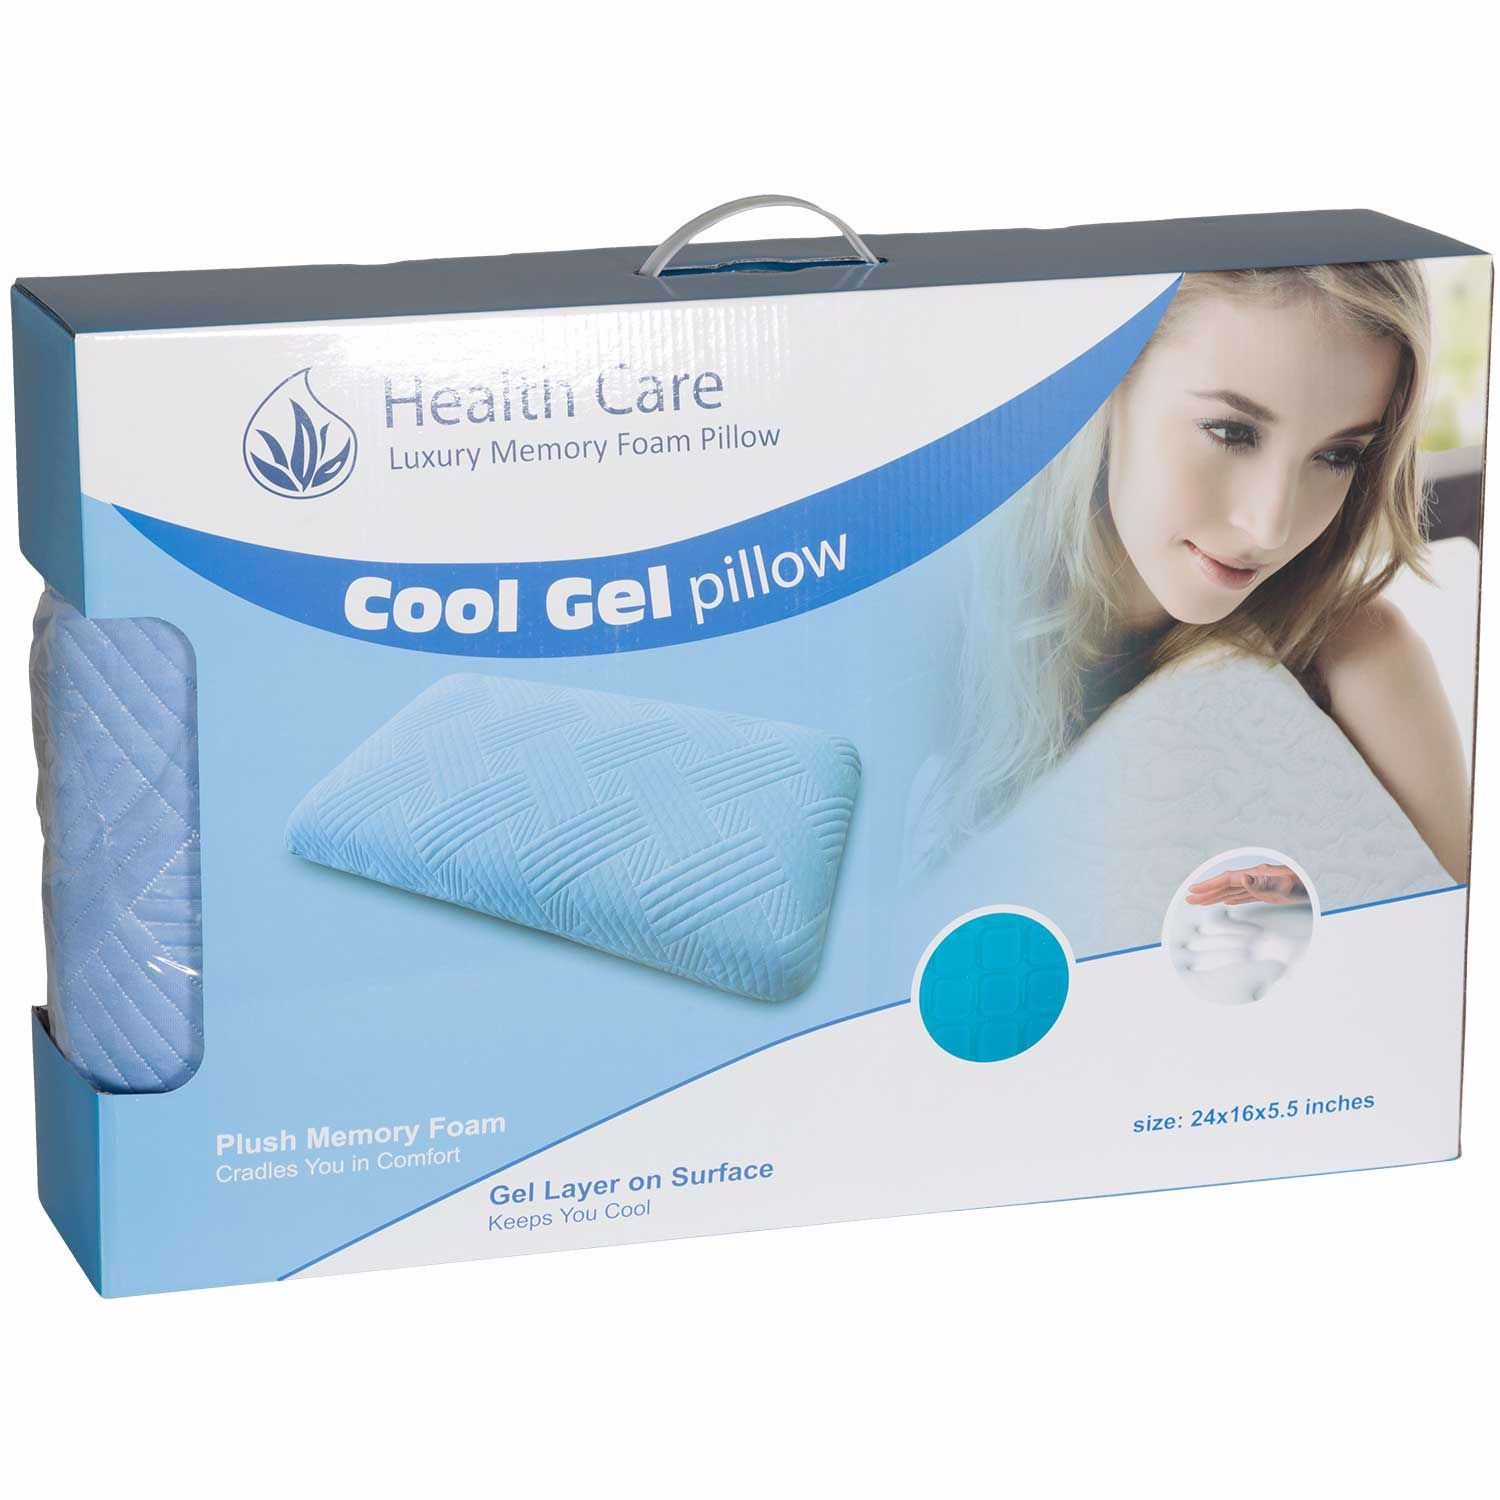 King Cool Square Gel Pillow Gel Pillow Foam Pillows Pillows